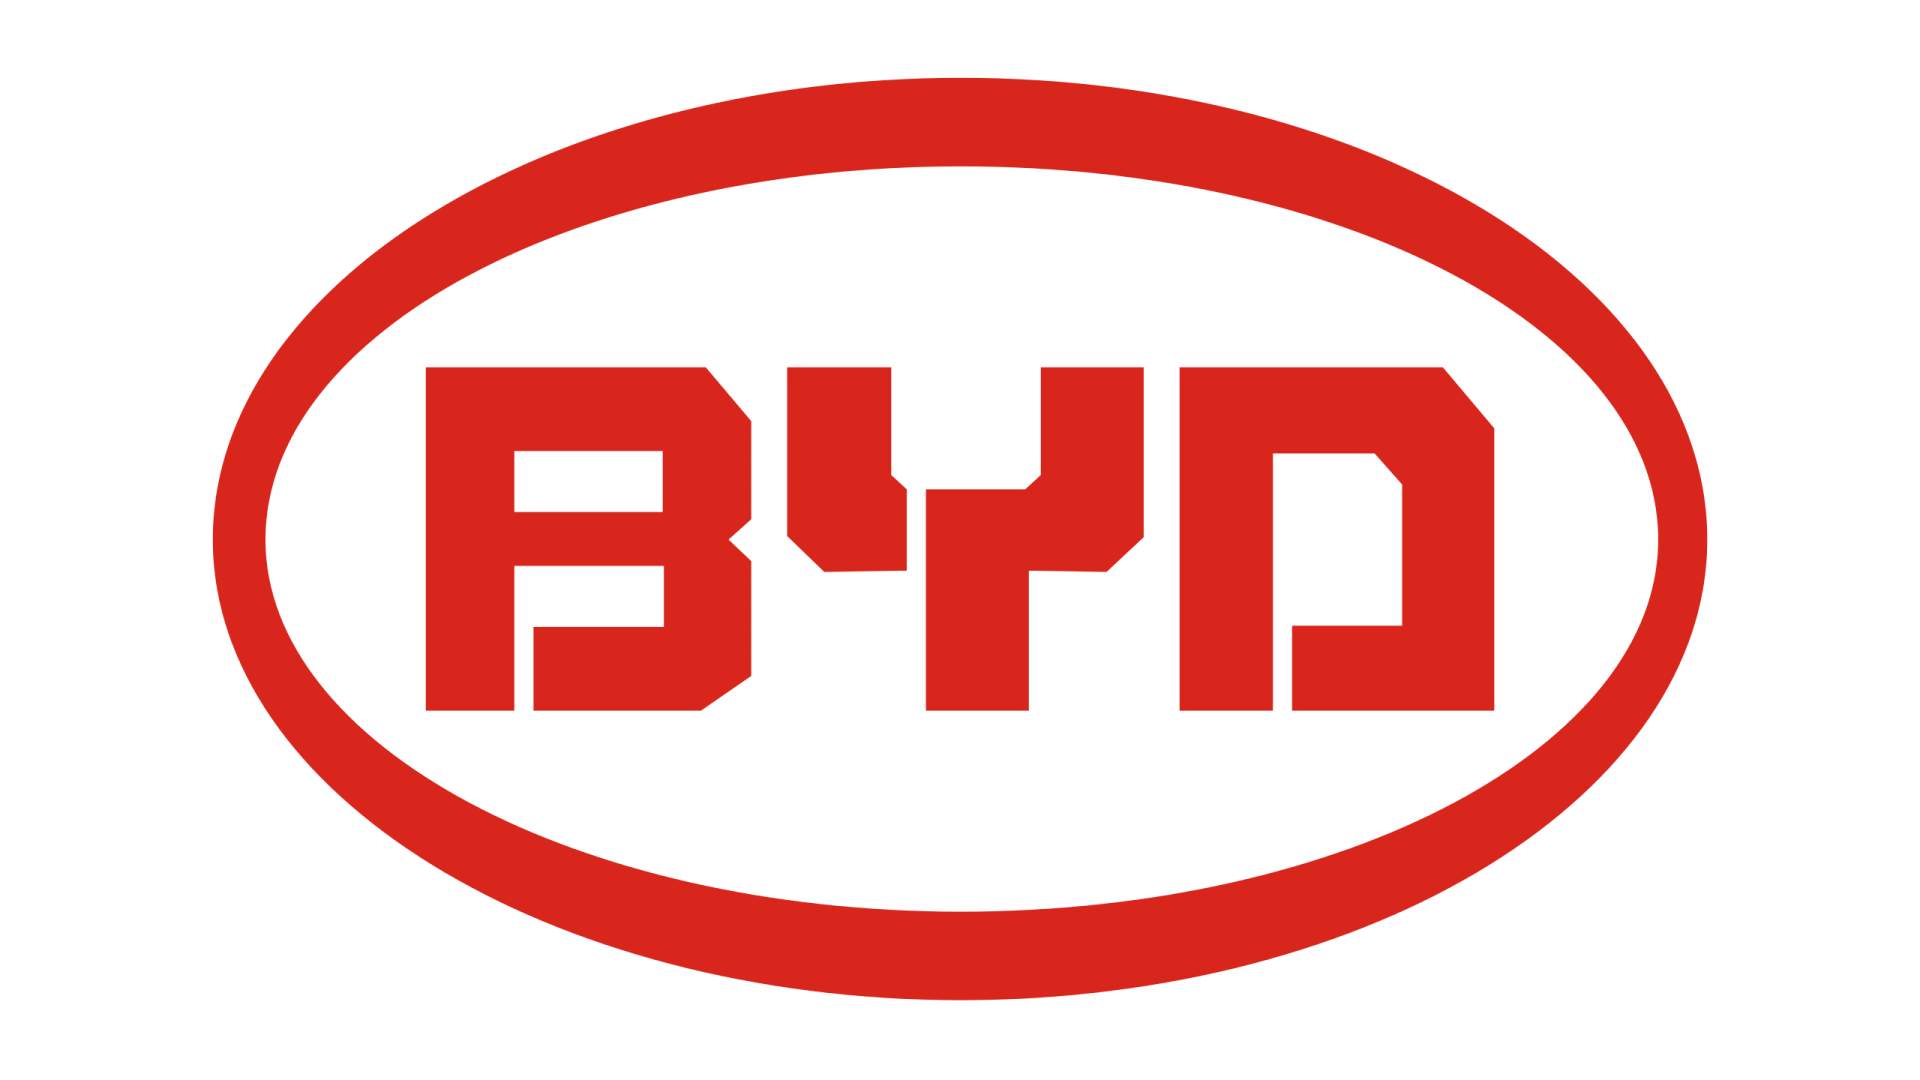 BYD battery manufacturer